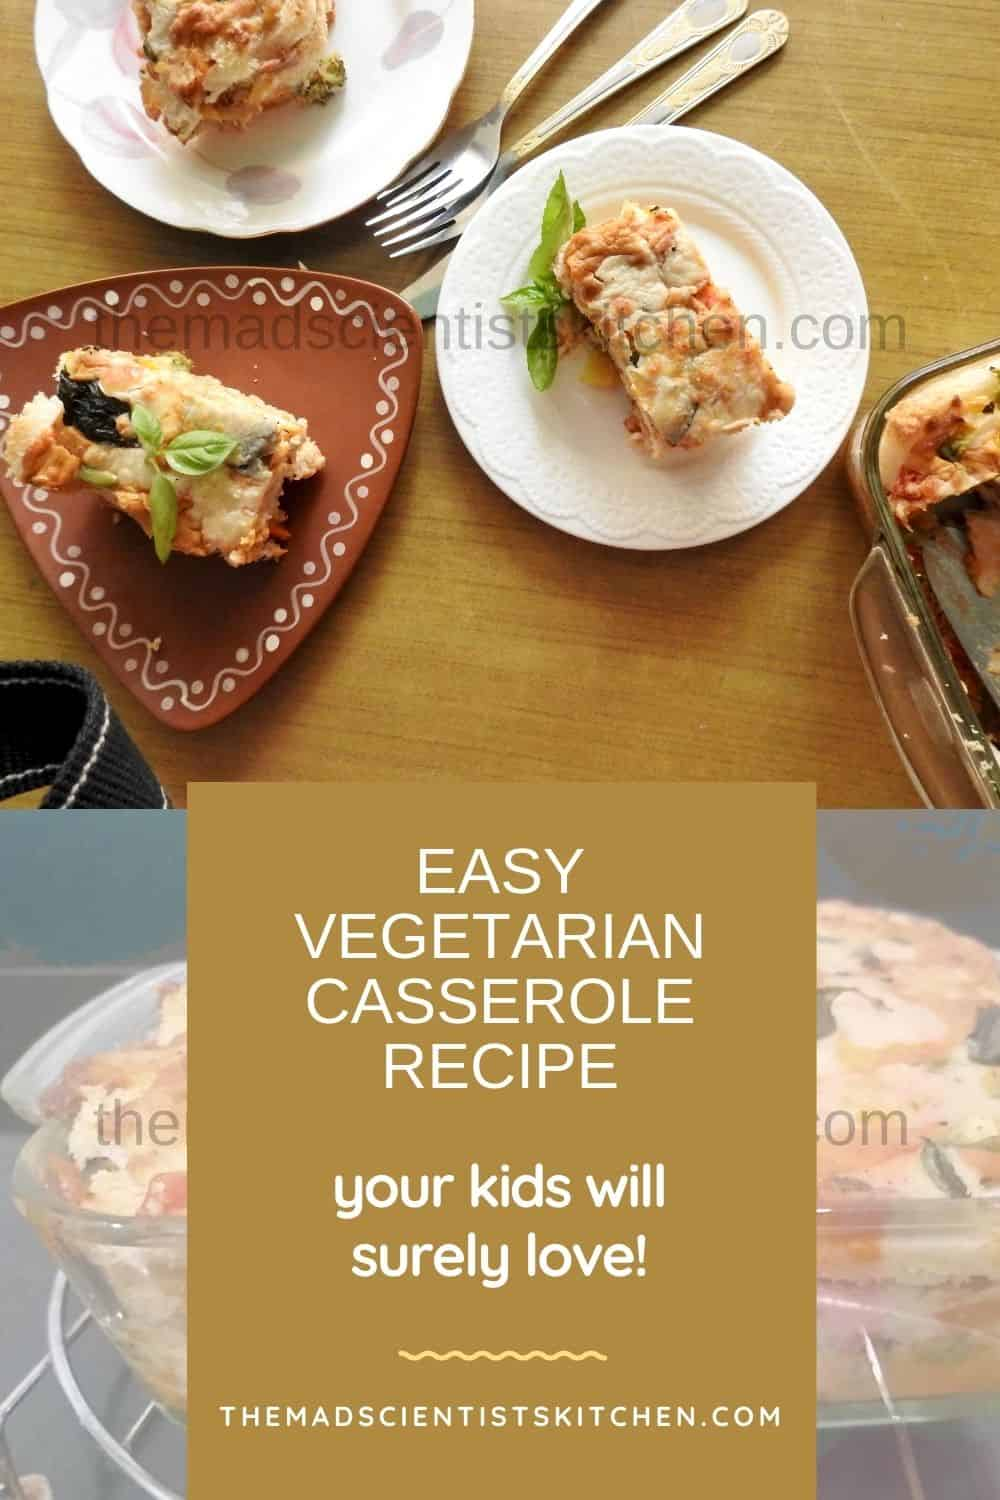 Enjoy vegetarian casserole we loved it.